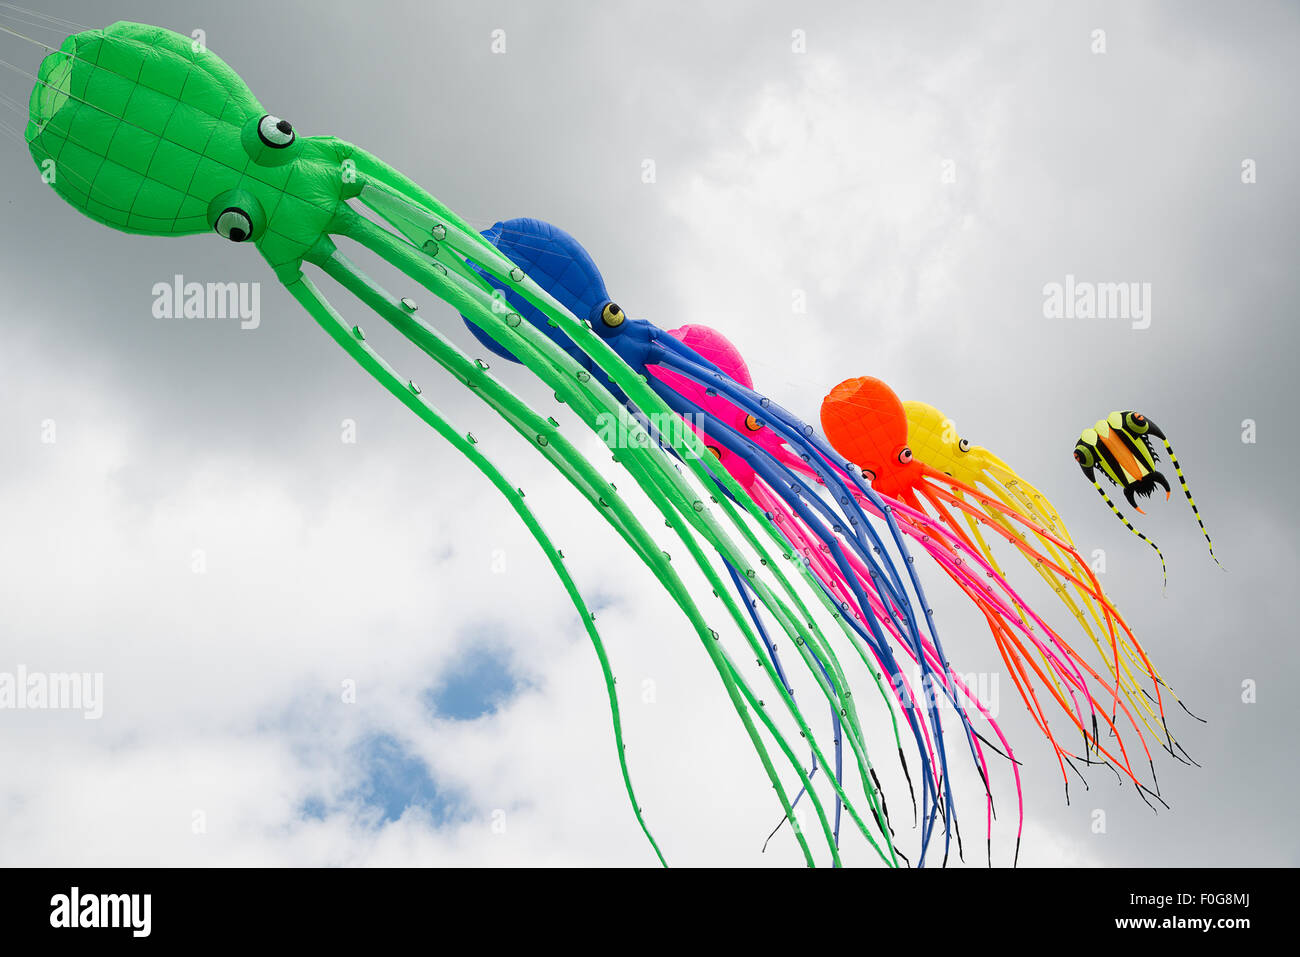 Portsmouth, UK. 15th August 2015. A line of large octopus soft kites fly in the breeze during the International Stock Photo